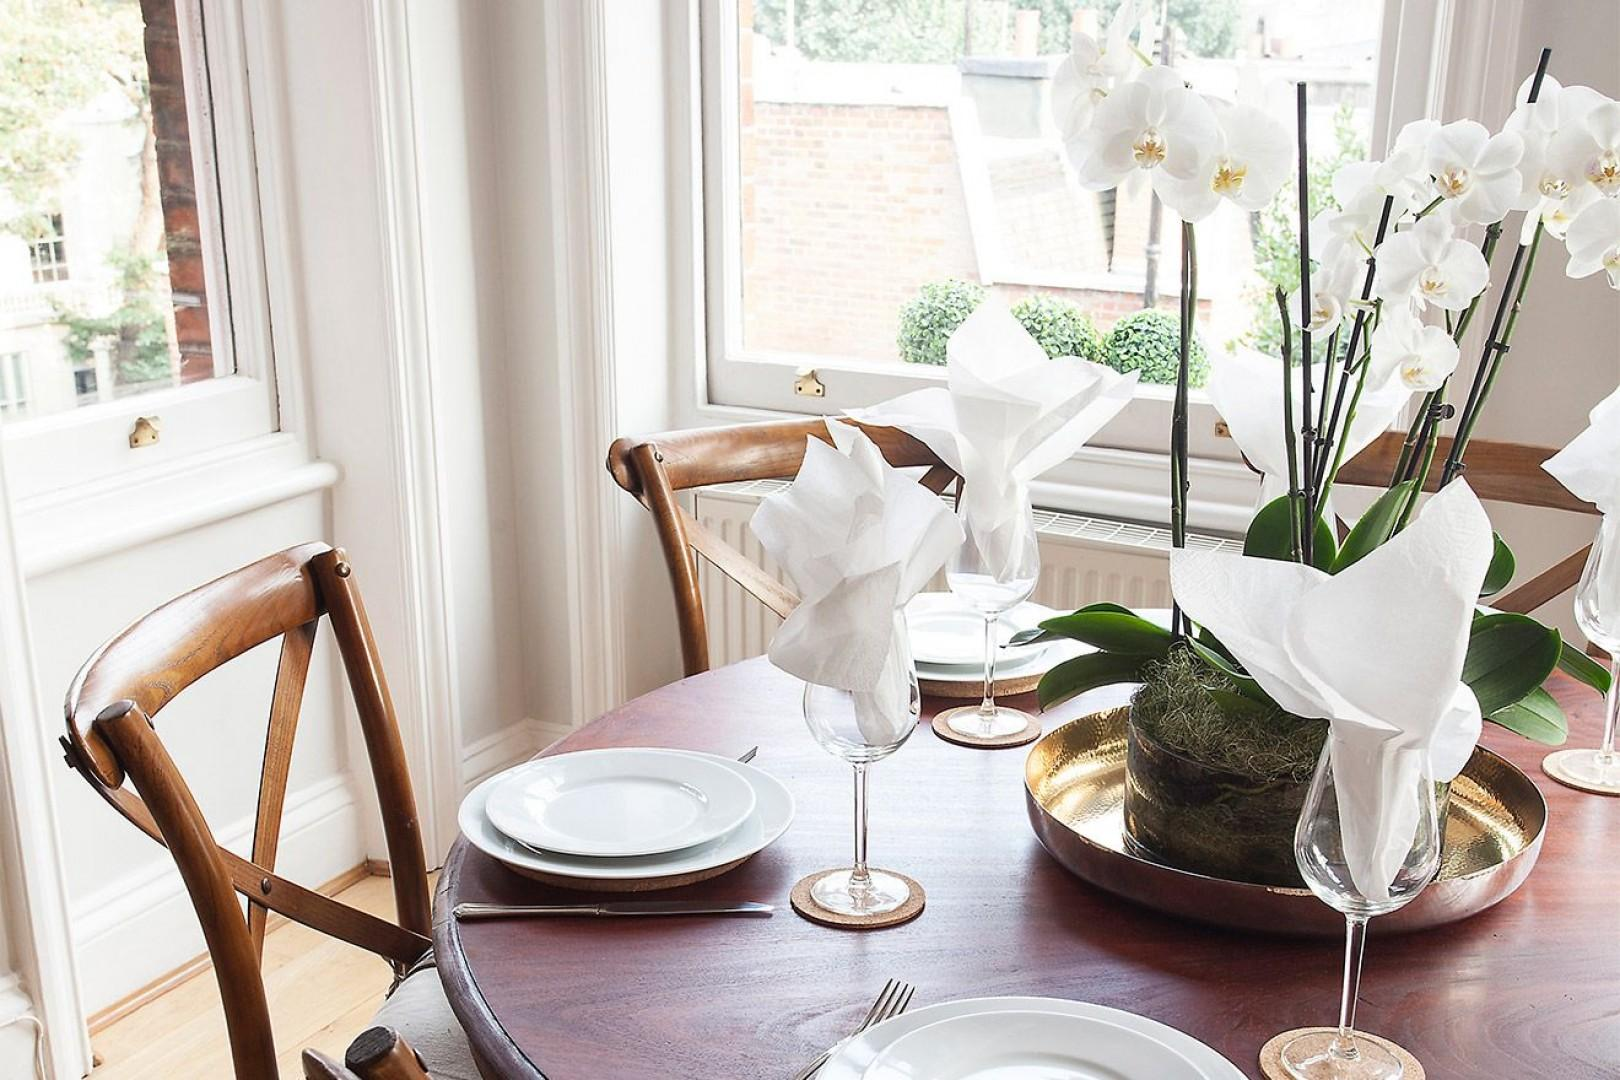 Set the table for a romantic dinner at home